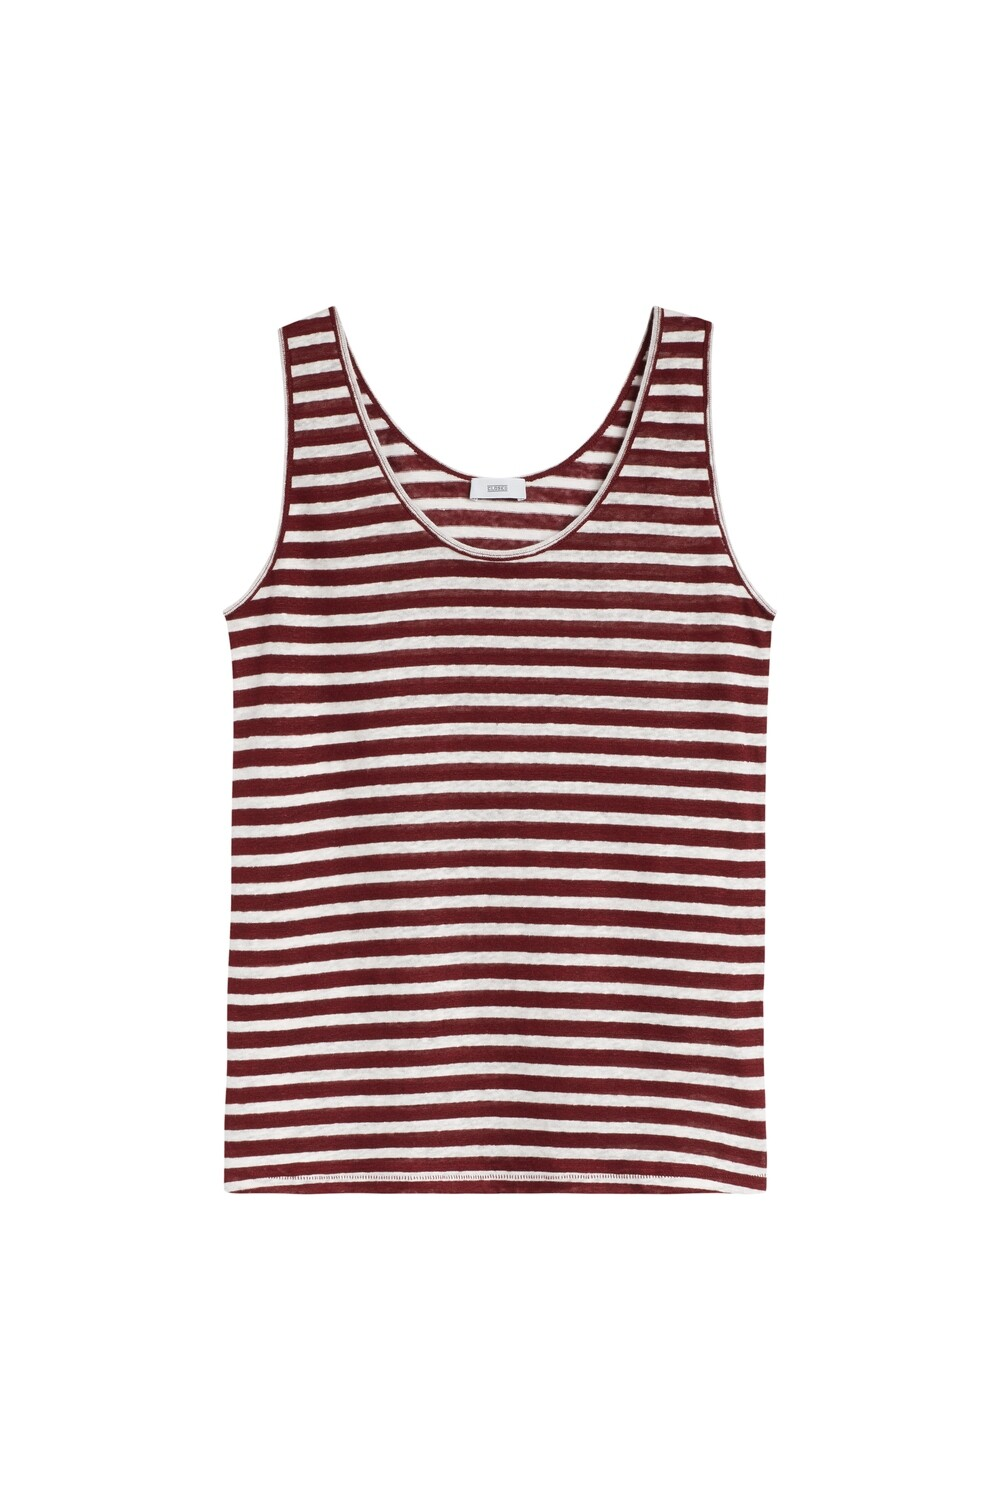 Women's Tank, CLOSED Official